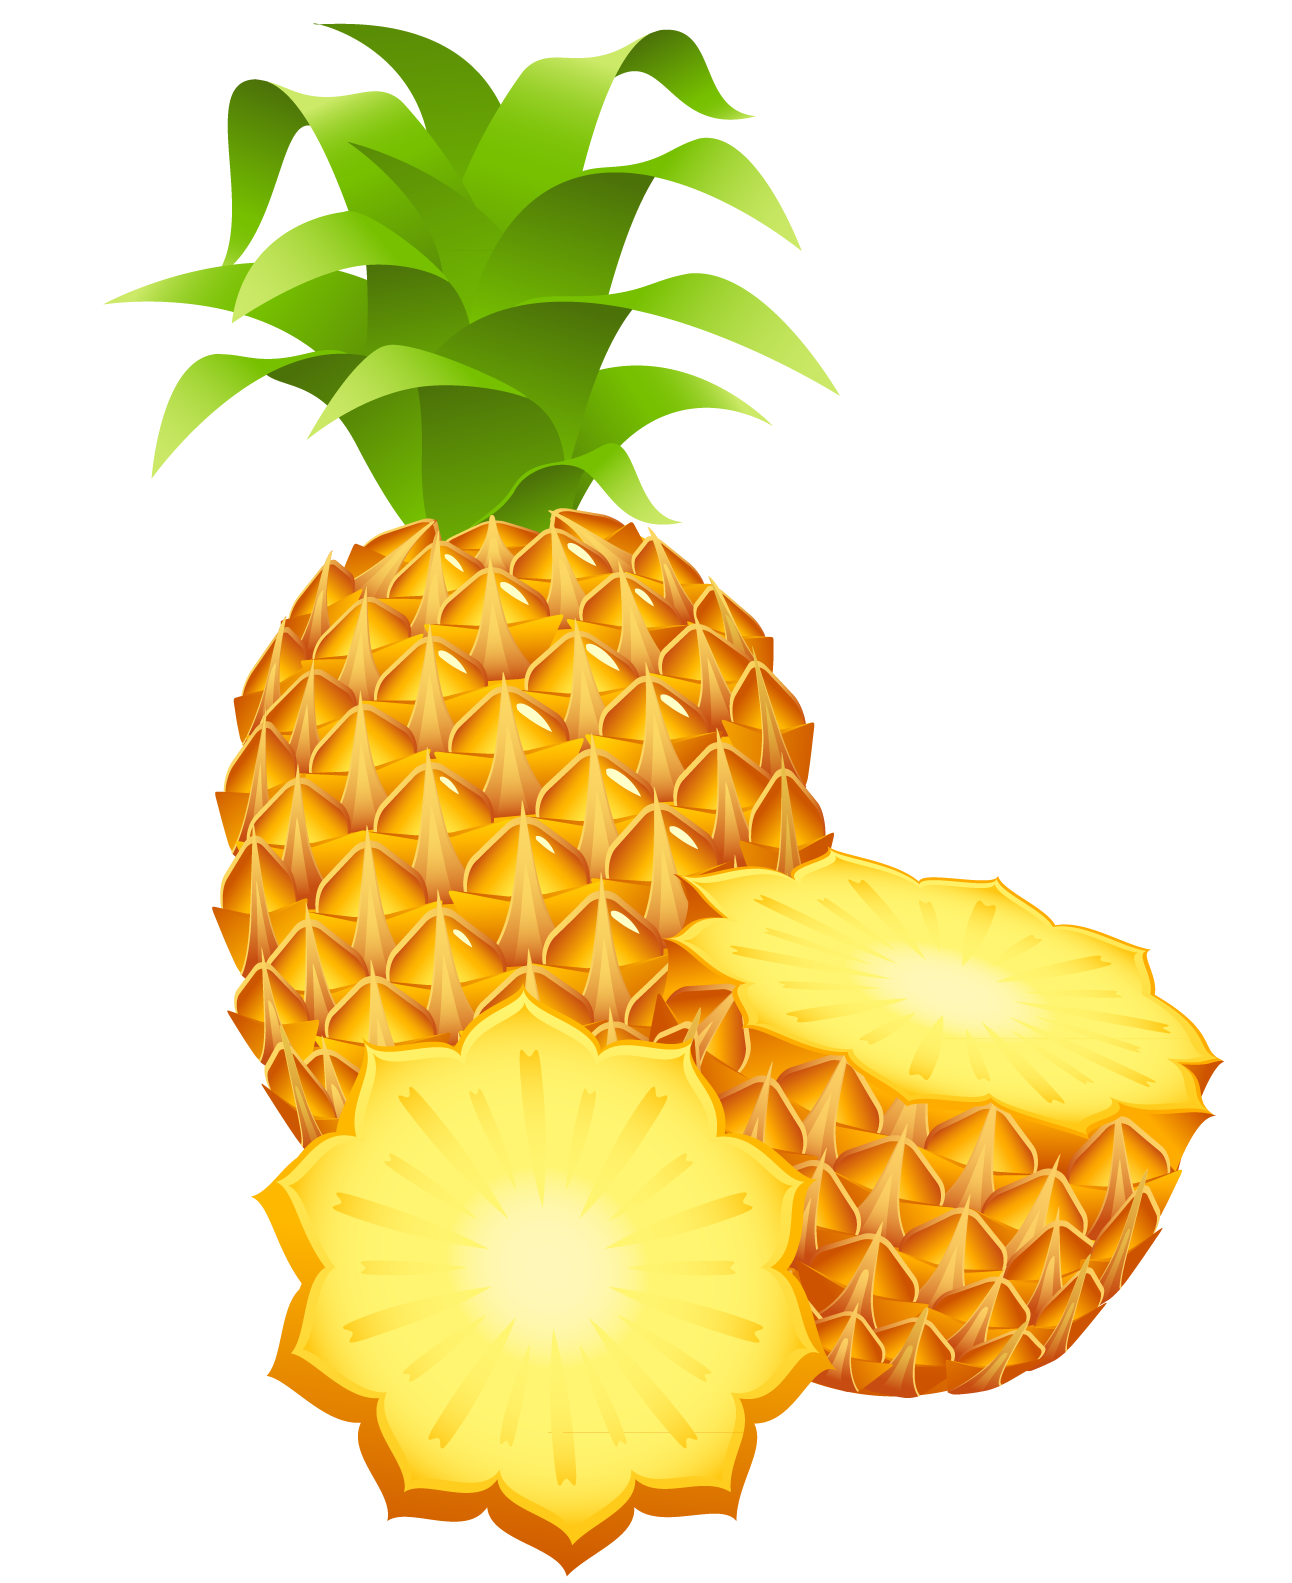 Pinapple Clipart Png Image Pineapple Fruit Clip Art